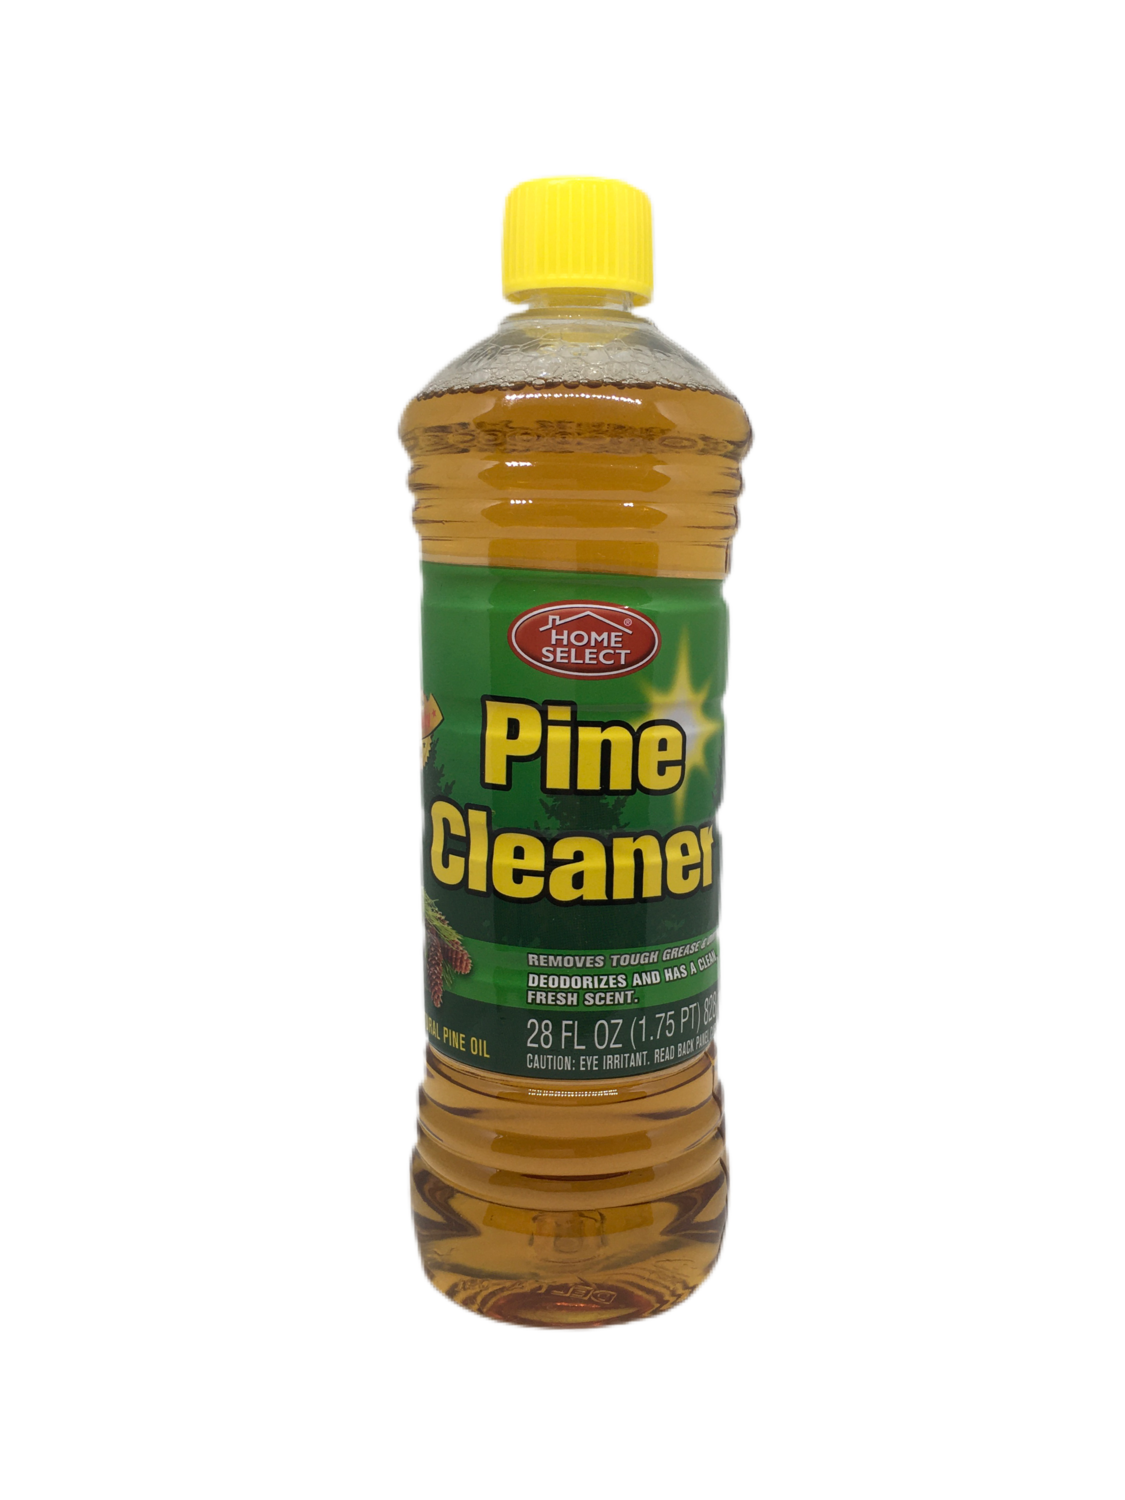 Pine Cleaner